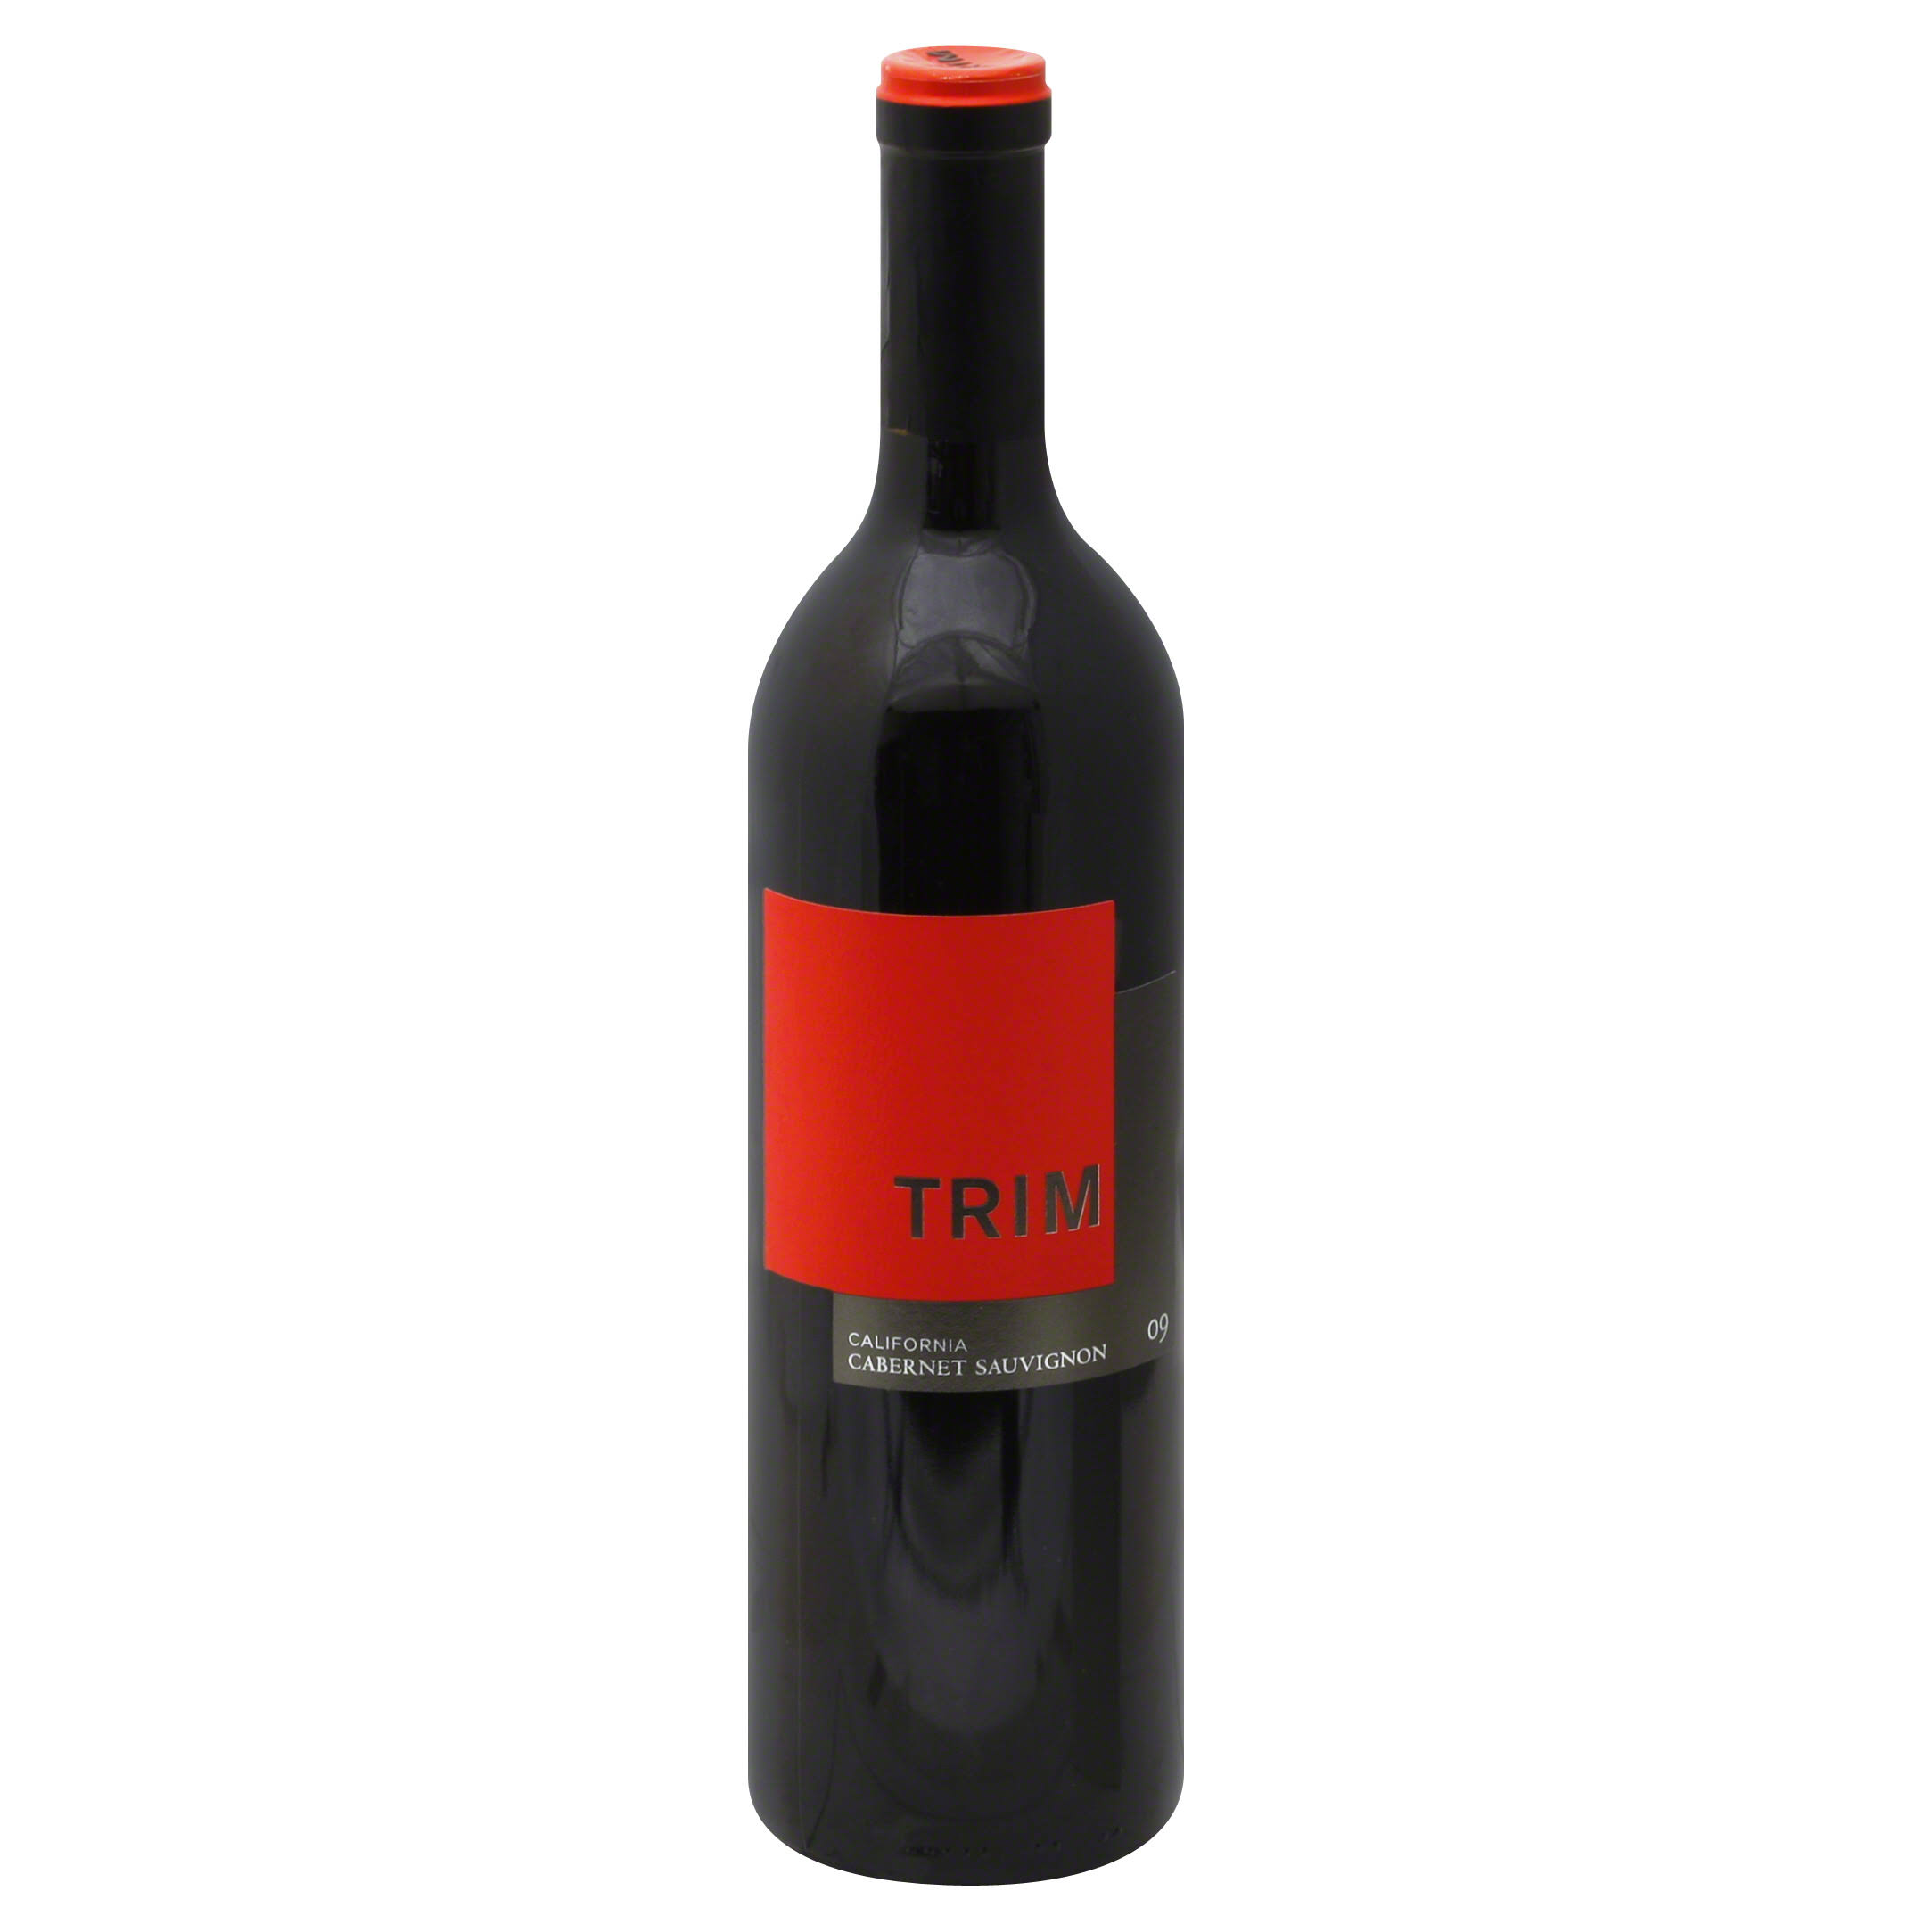 Trim Cabernet Sauvignon, California, 2009 - 750 ml